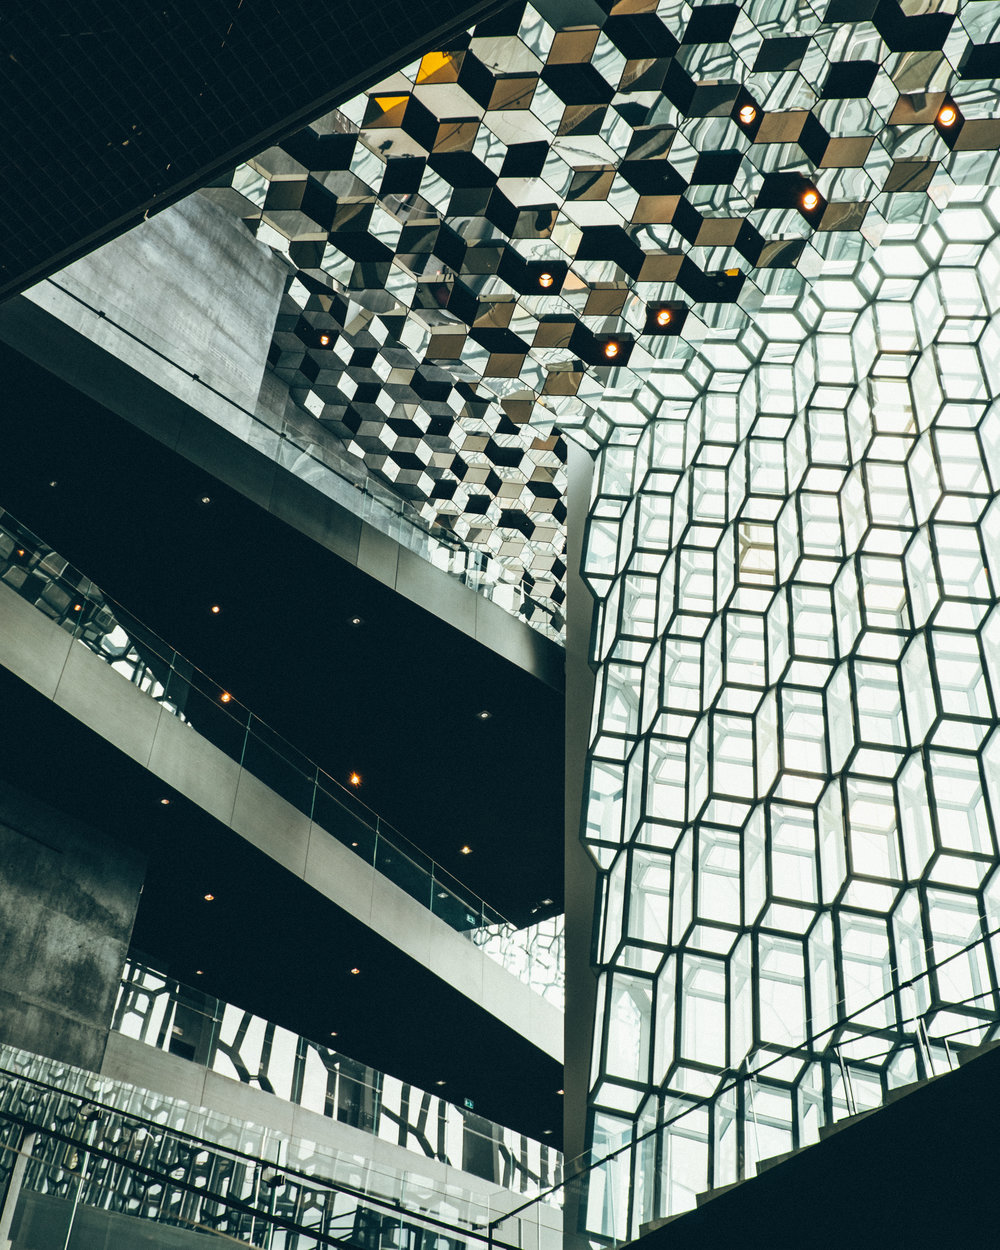 Inside the Harpa Concert Hall and Conference Centre